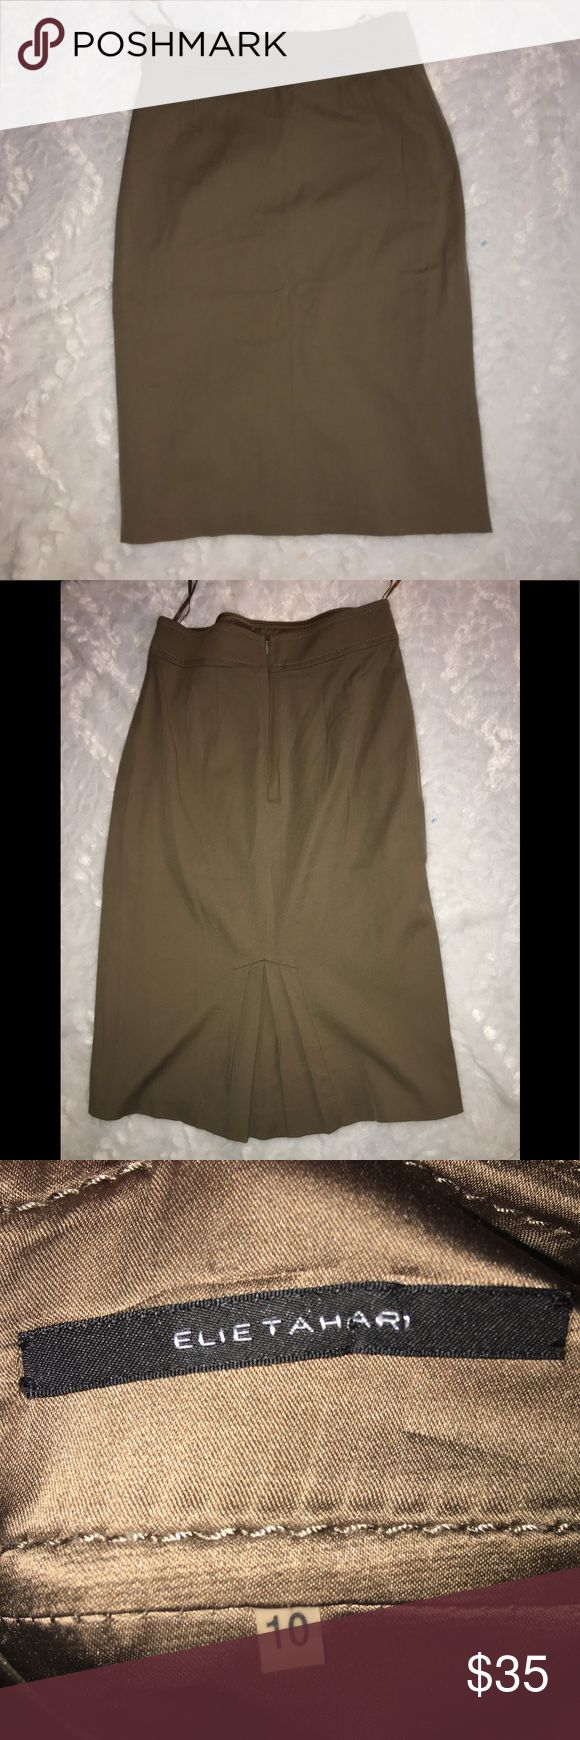 Elie tahari pencil skirt brown size 20 You are purchasing a women's elie tahari brown pencil skirt. Size 10 Elie Tahari Skirts Pencil